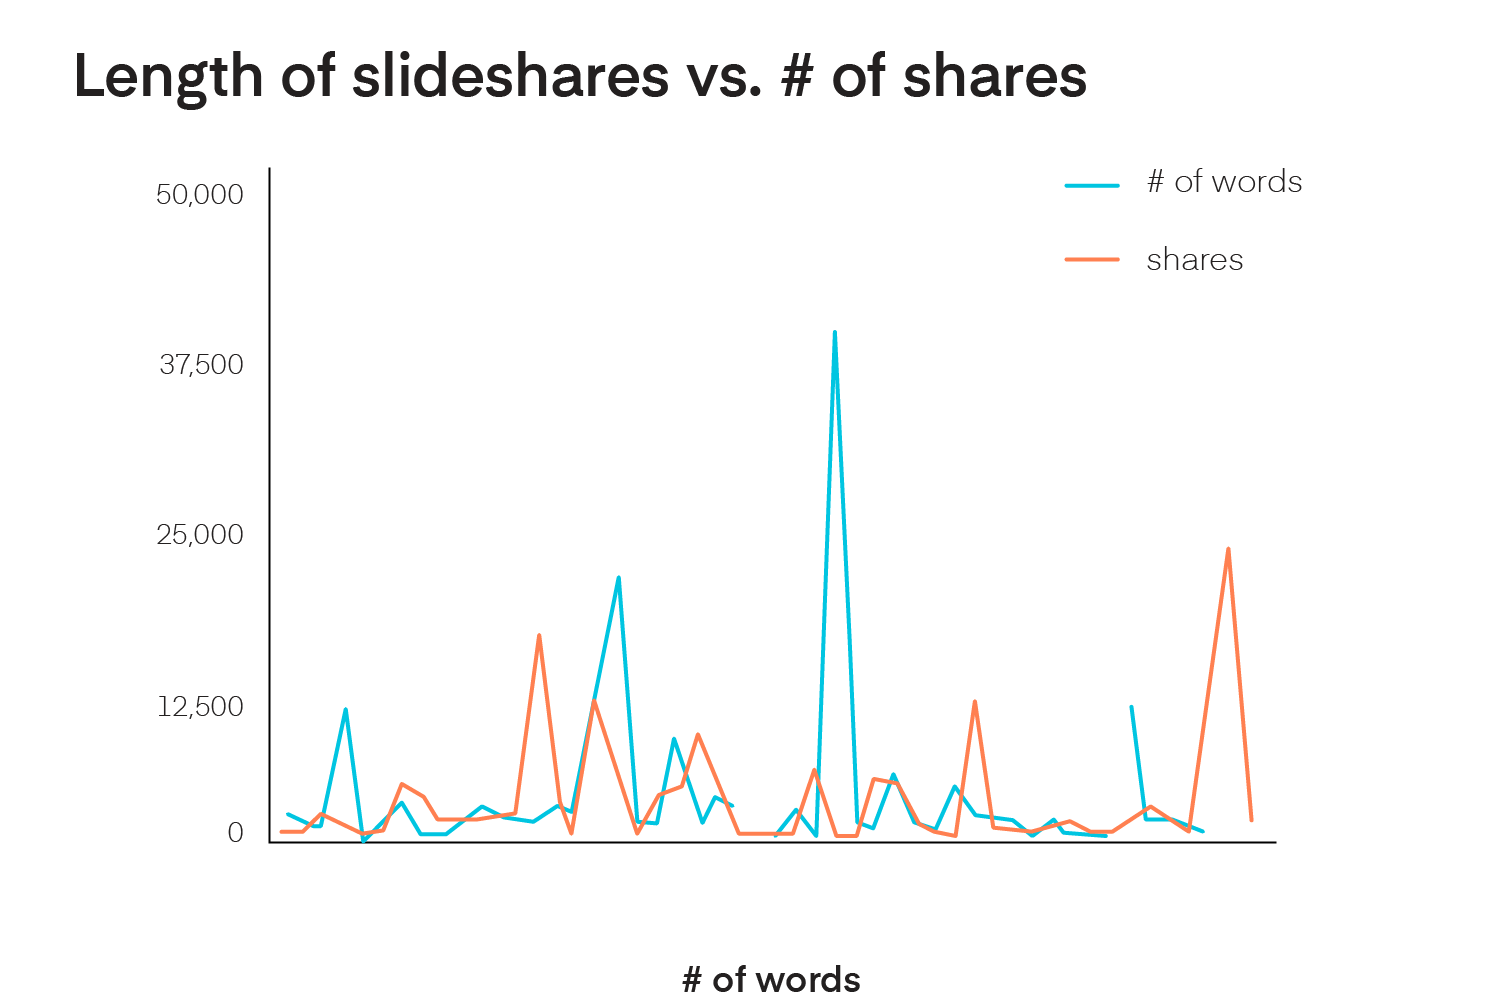 Relationship between number of social shares and words for slideshare